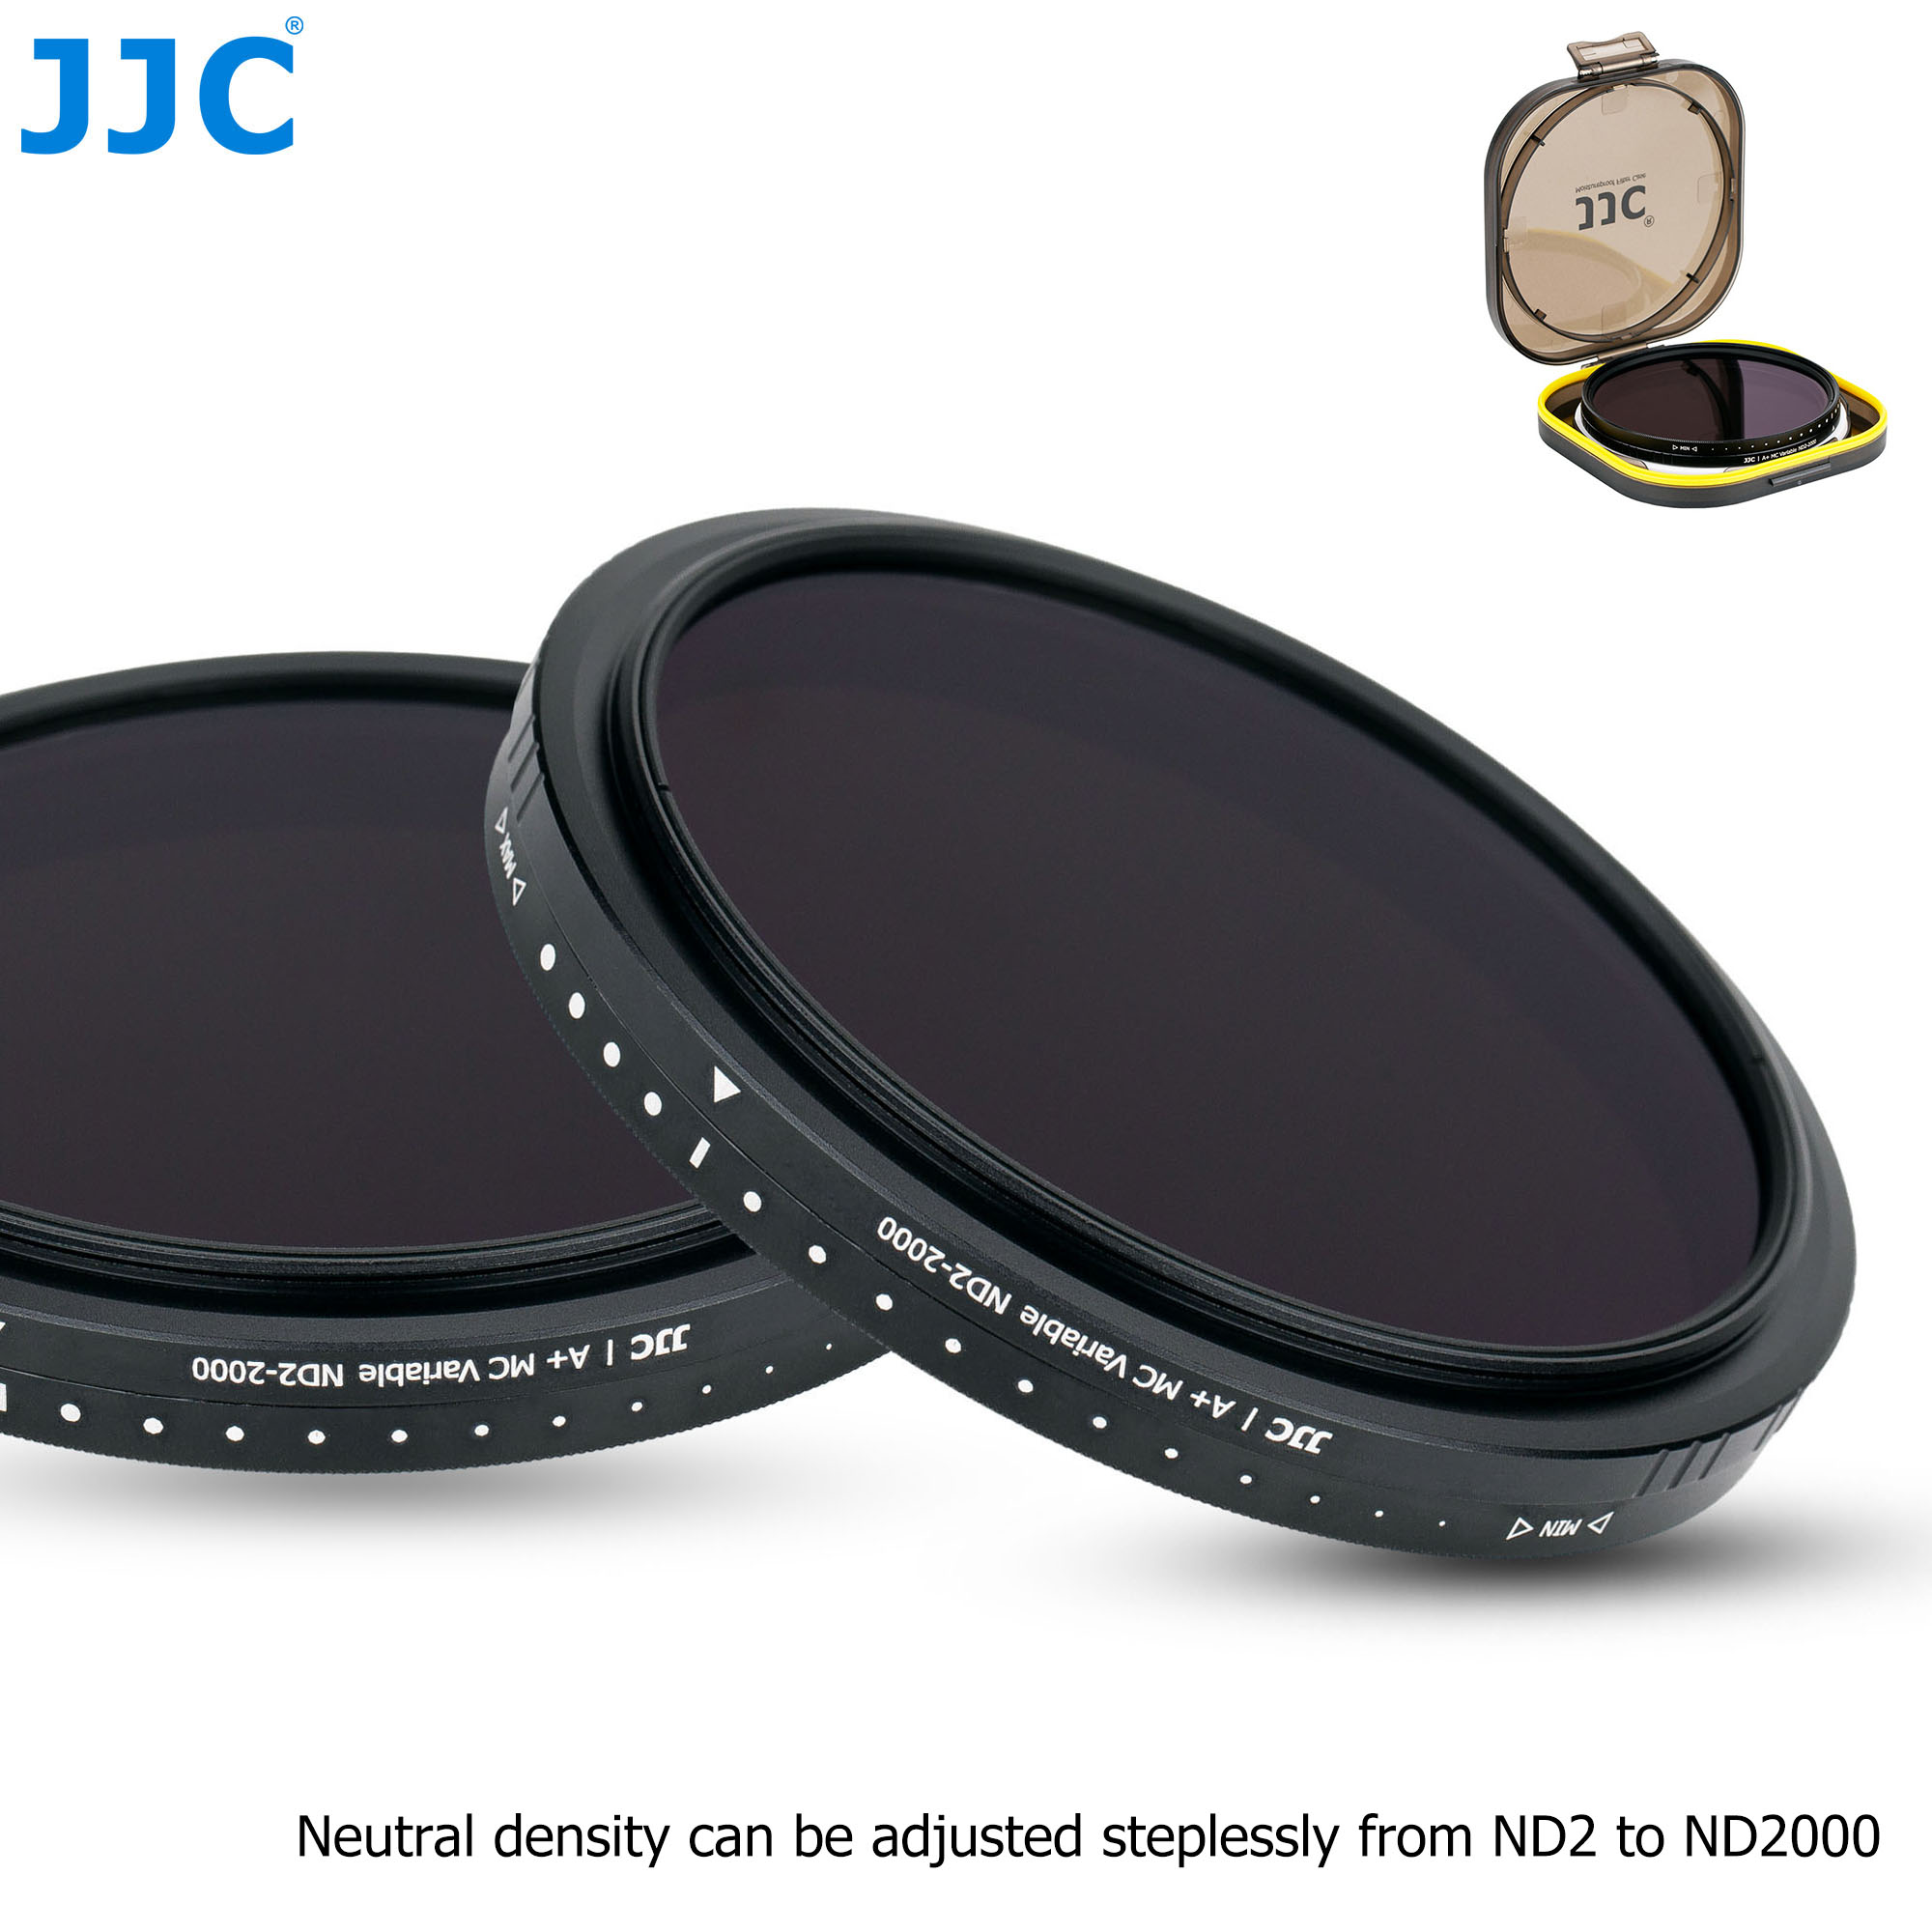 JJC Variable Nd Filter Neutral Density ND2 to ND2000 Lens Filter 49mm 52mm 55mm 58mm 62mm 67mm 72mm 77mm 82mm with Filter Case